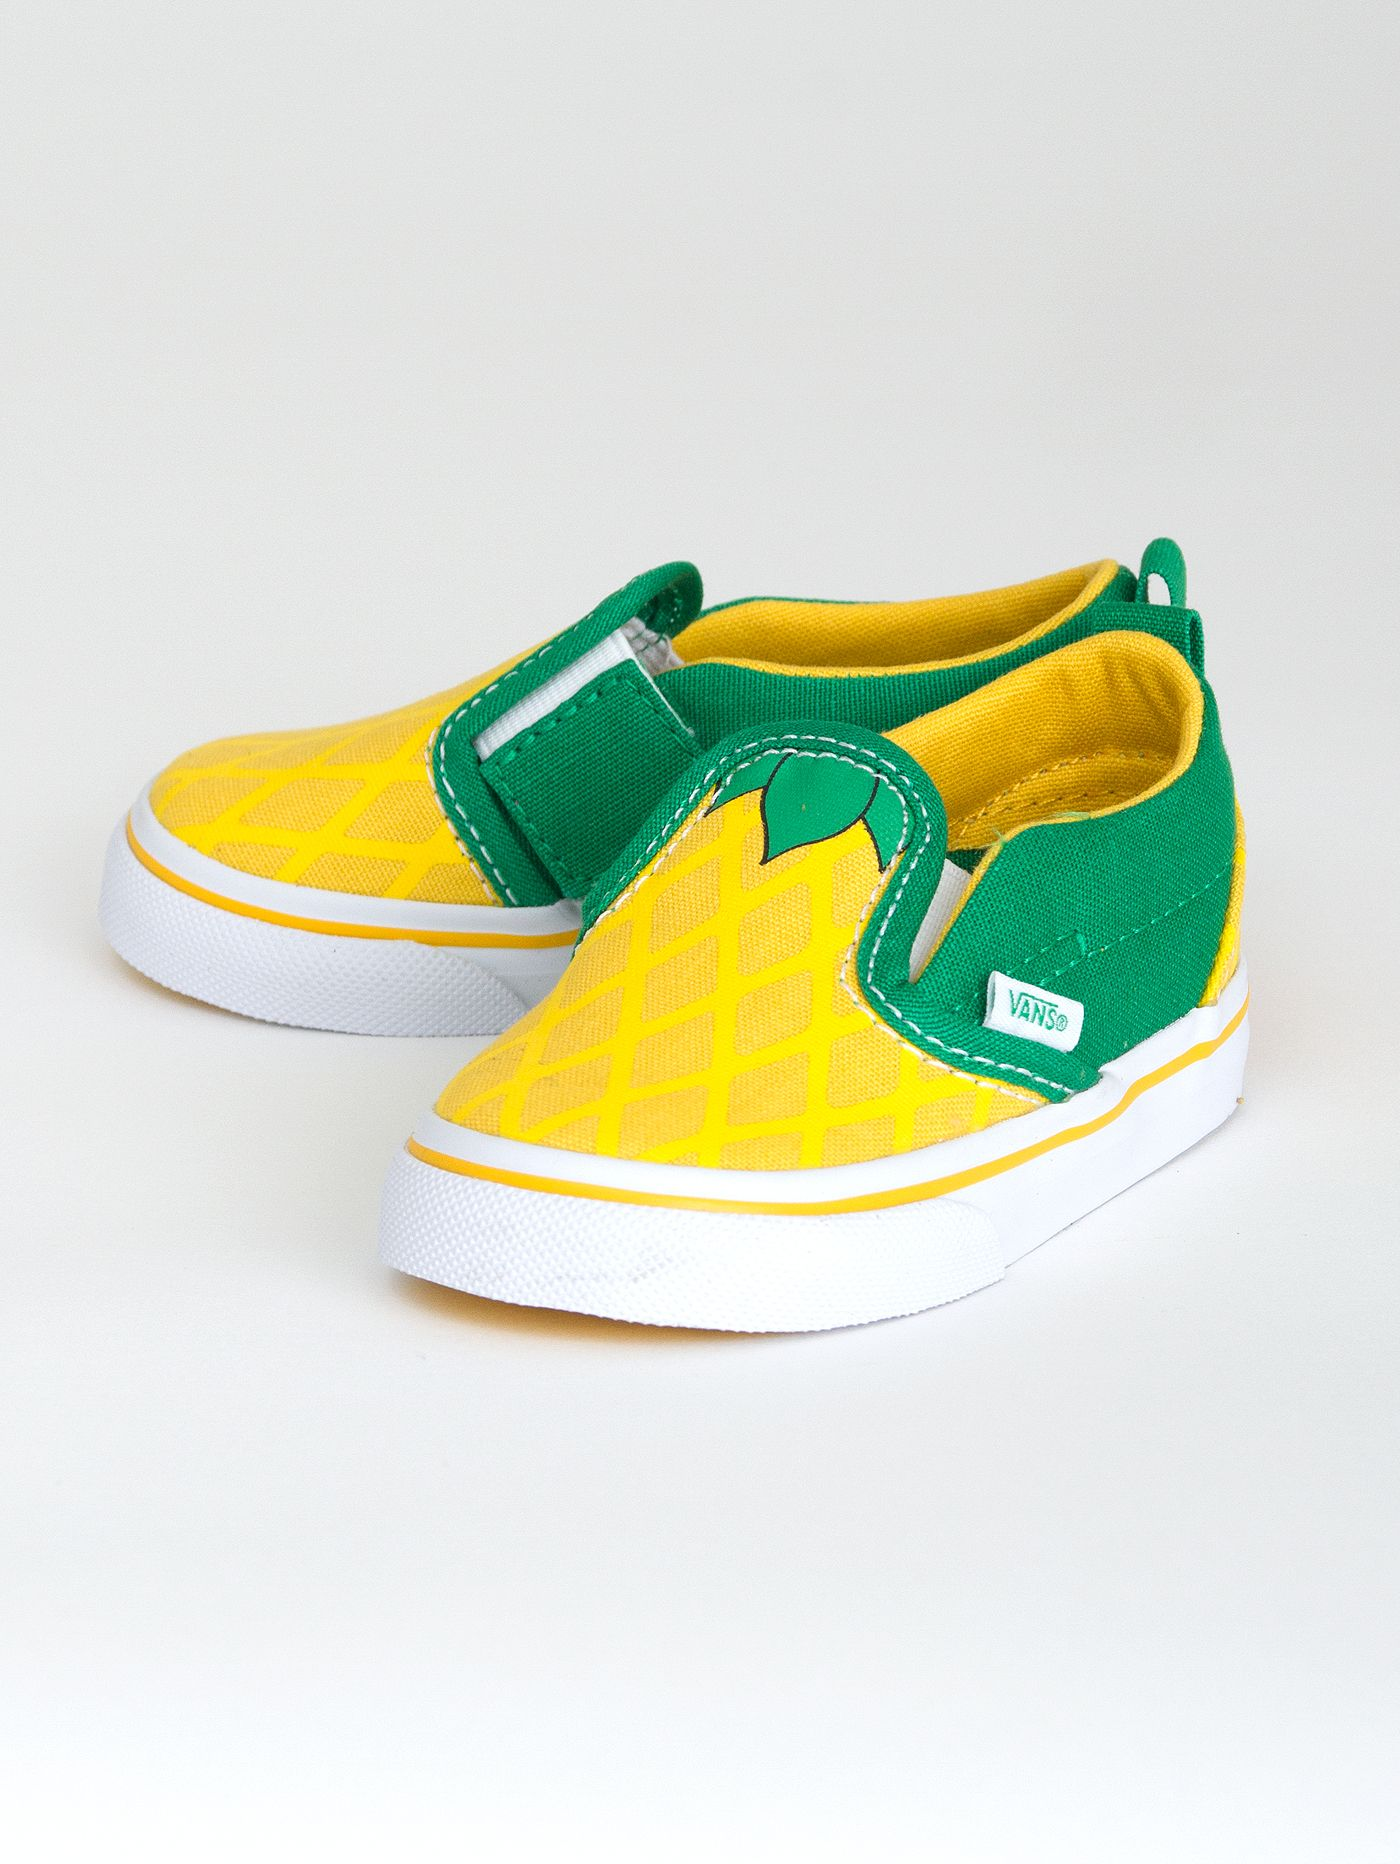 Newborn Shoes Vans Vans Kids Pineapple Sneaker Baby Dreams Baby Shoes